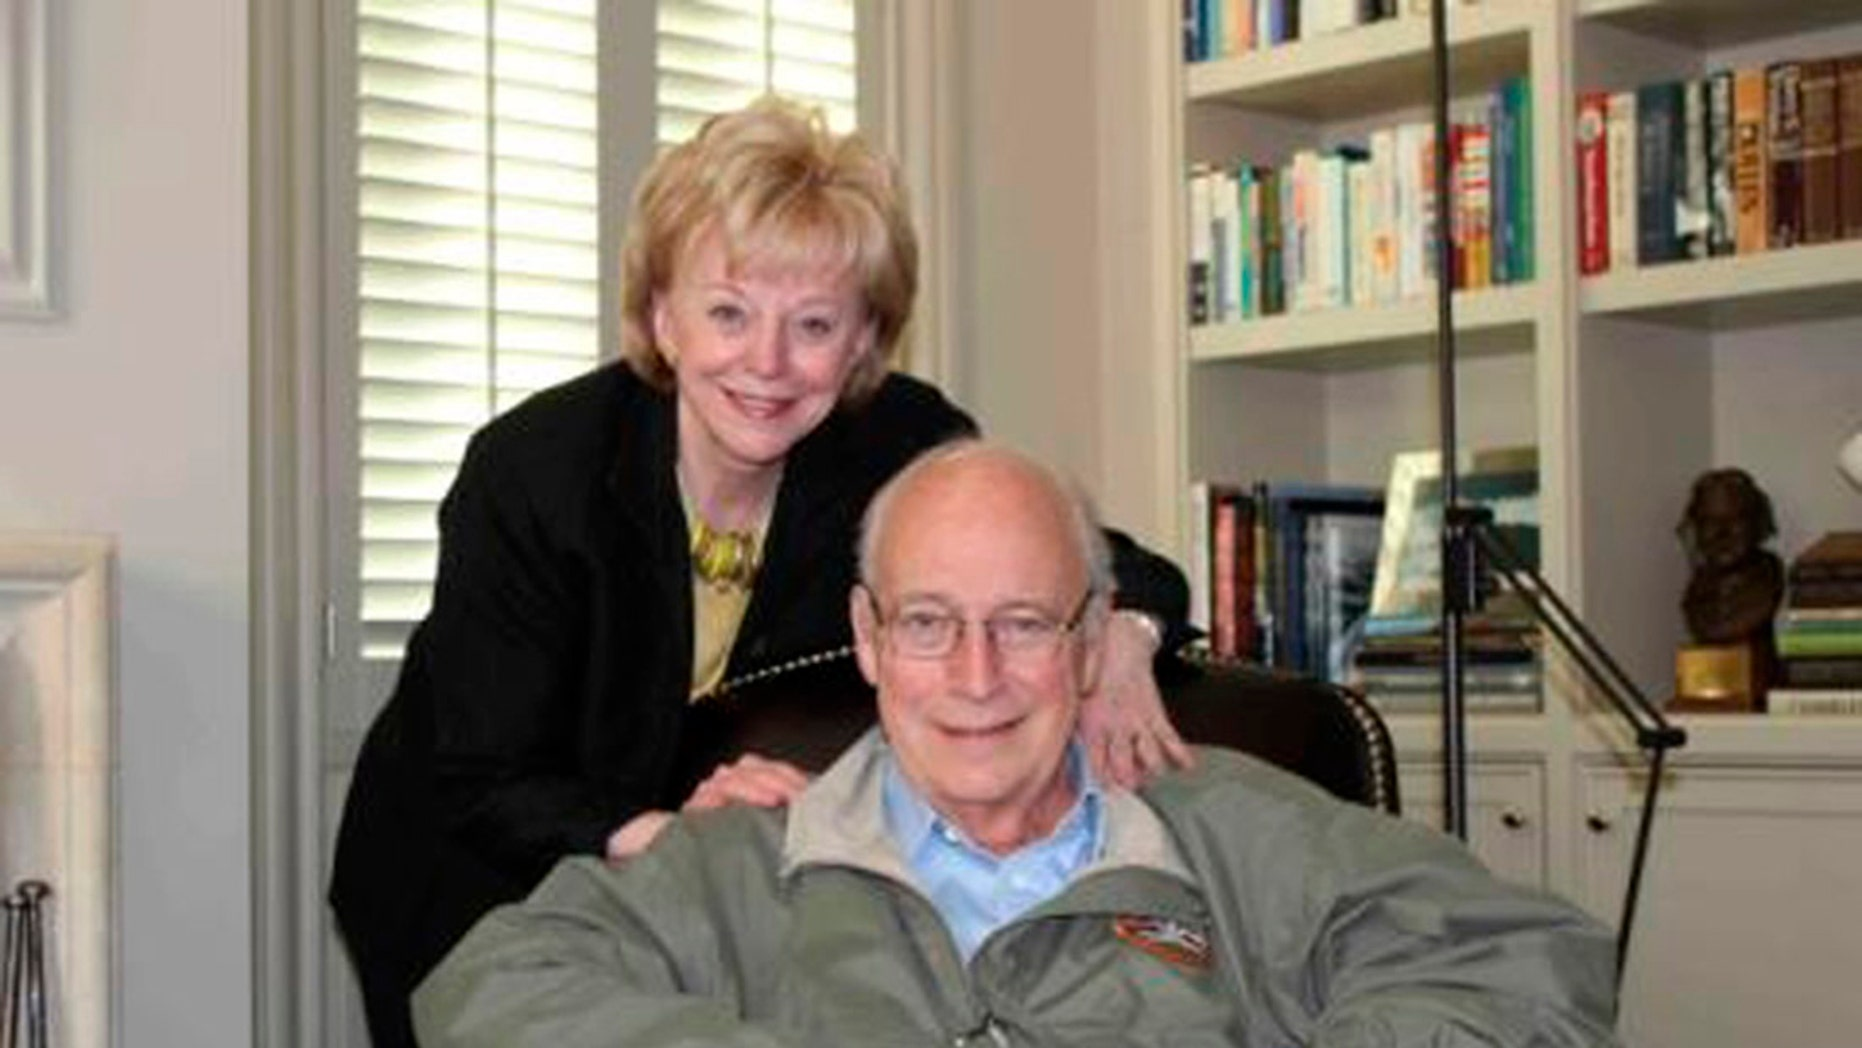 April 3, 2012: Former U.S. Vice President Dick Cheney and his wife Lynne are pictured at home in this family photograph.